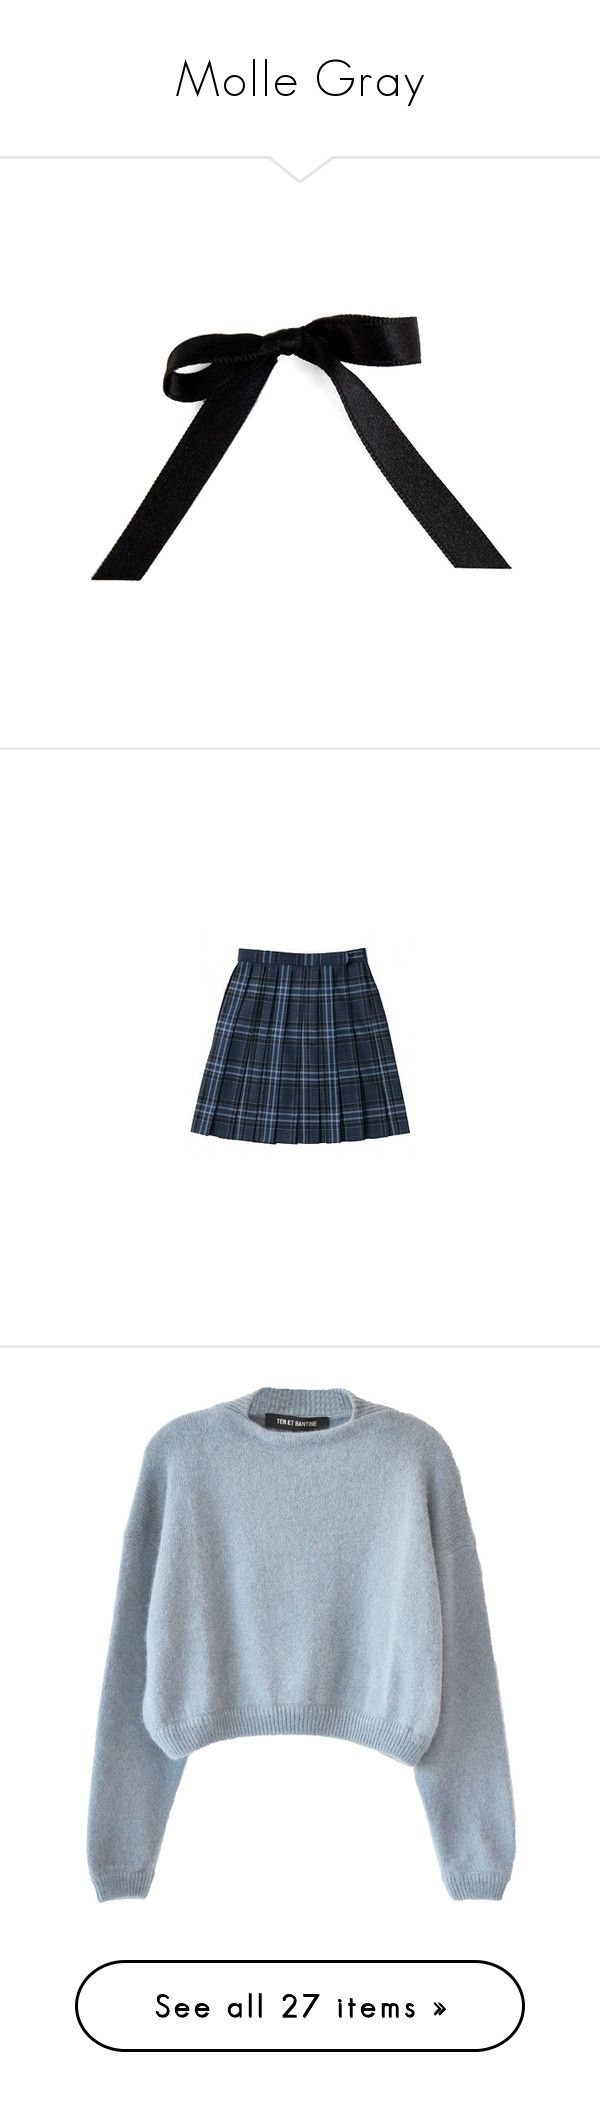 """""""Molle Gray"""" by thrasherxbrooke ❤ liked on Polyvore featuring fillers, bows, accessories, black, black fillers, skirts, bottoms, saias, blue and checked skirt"""